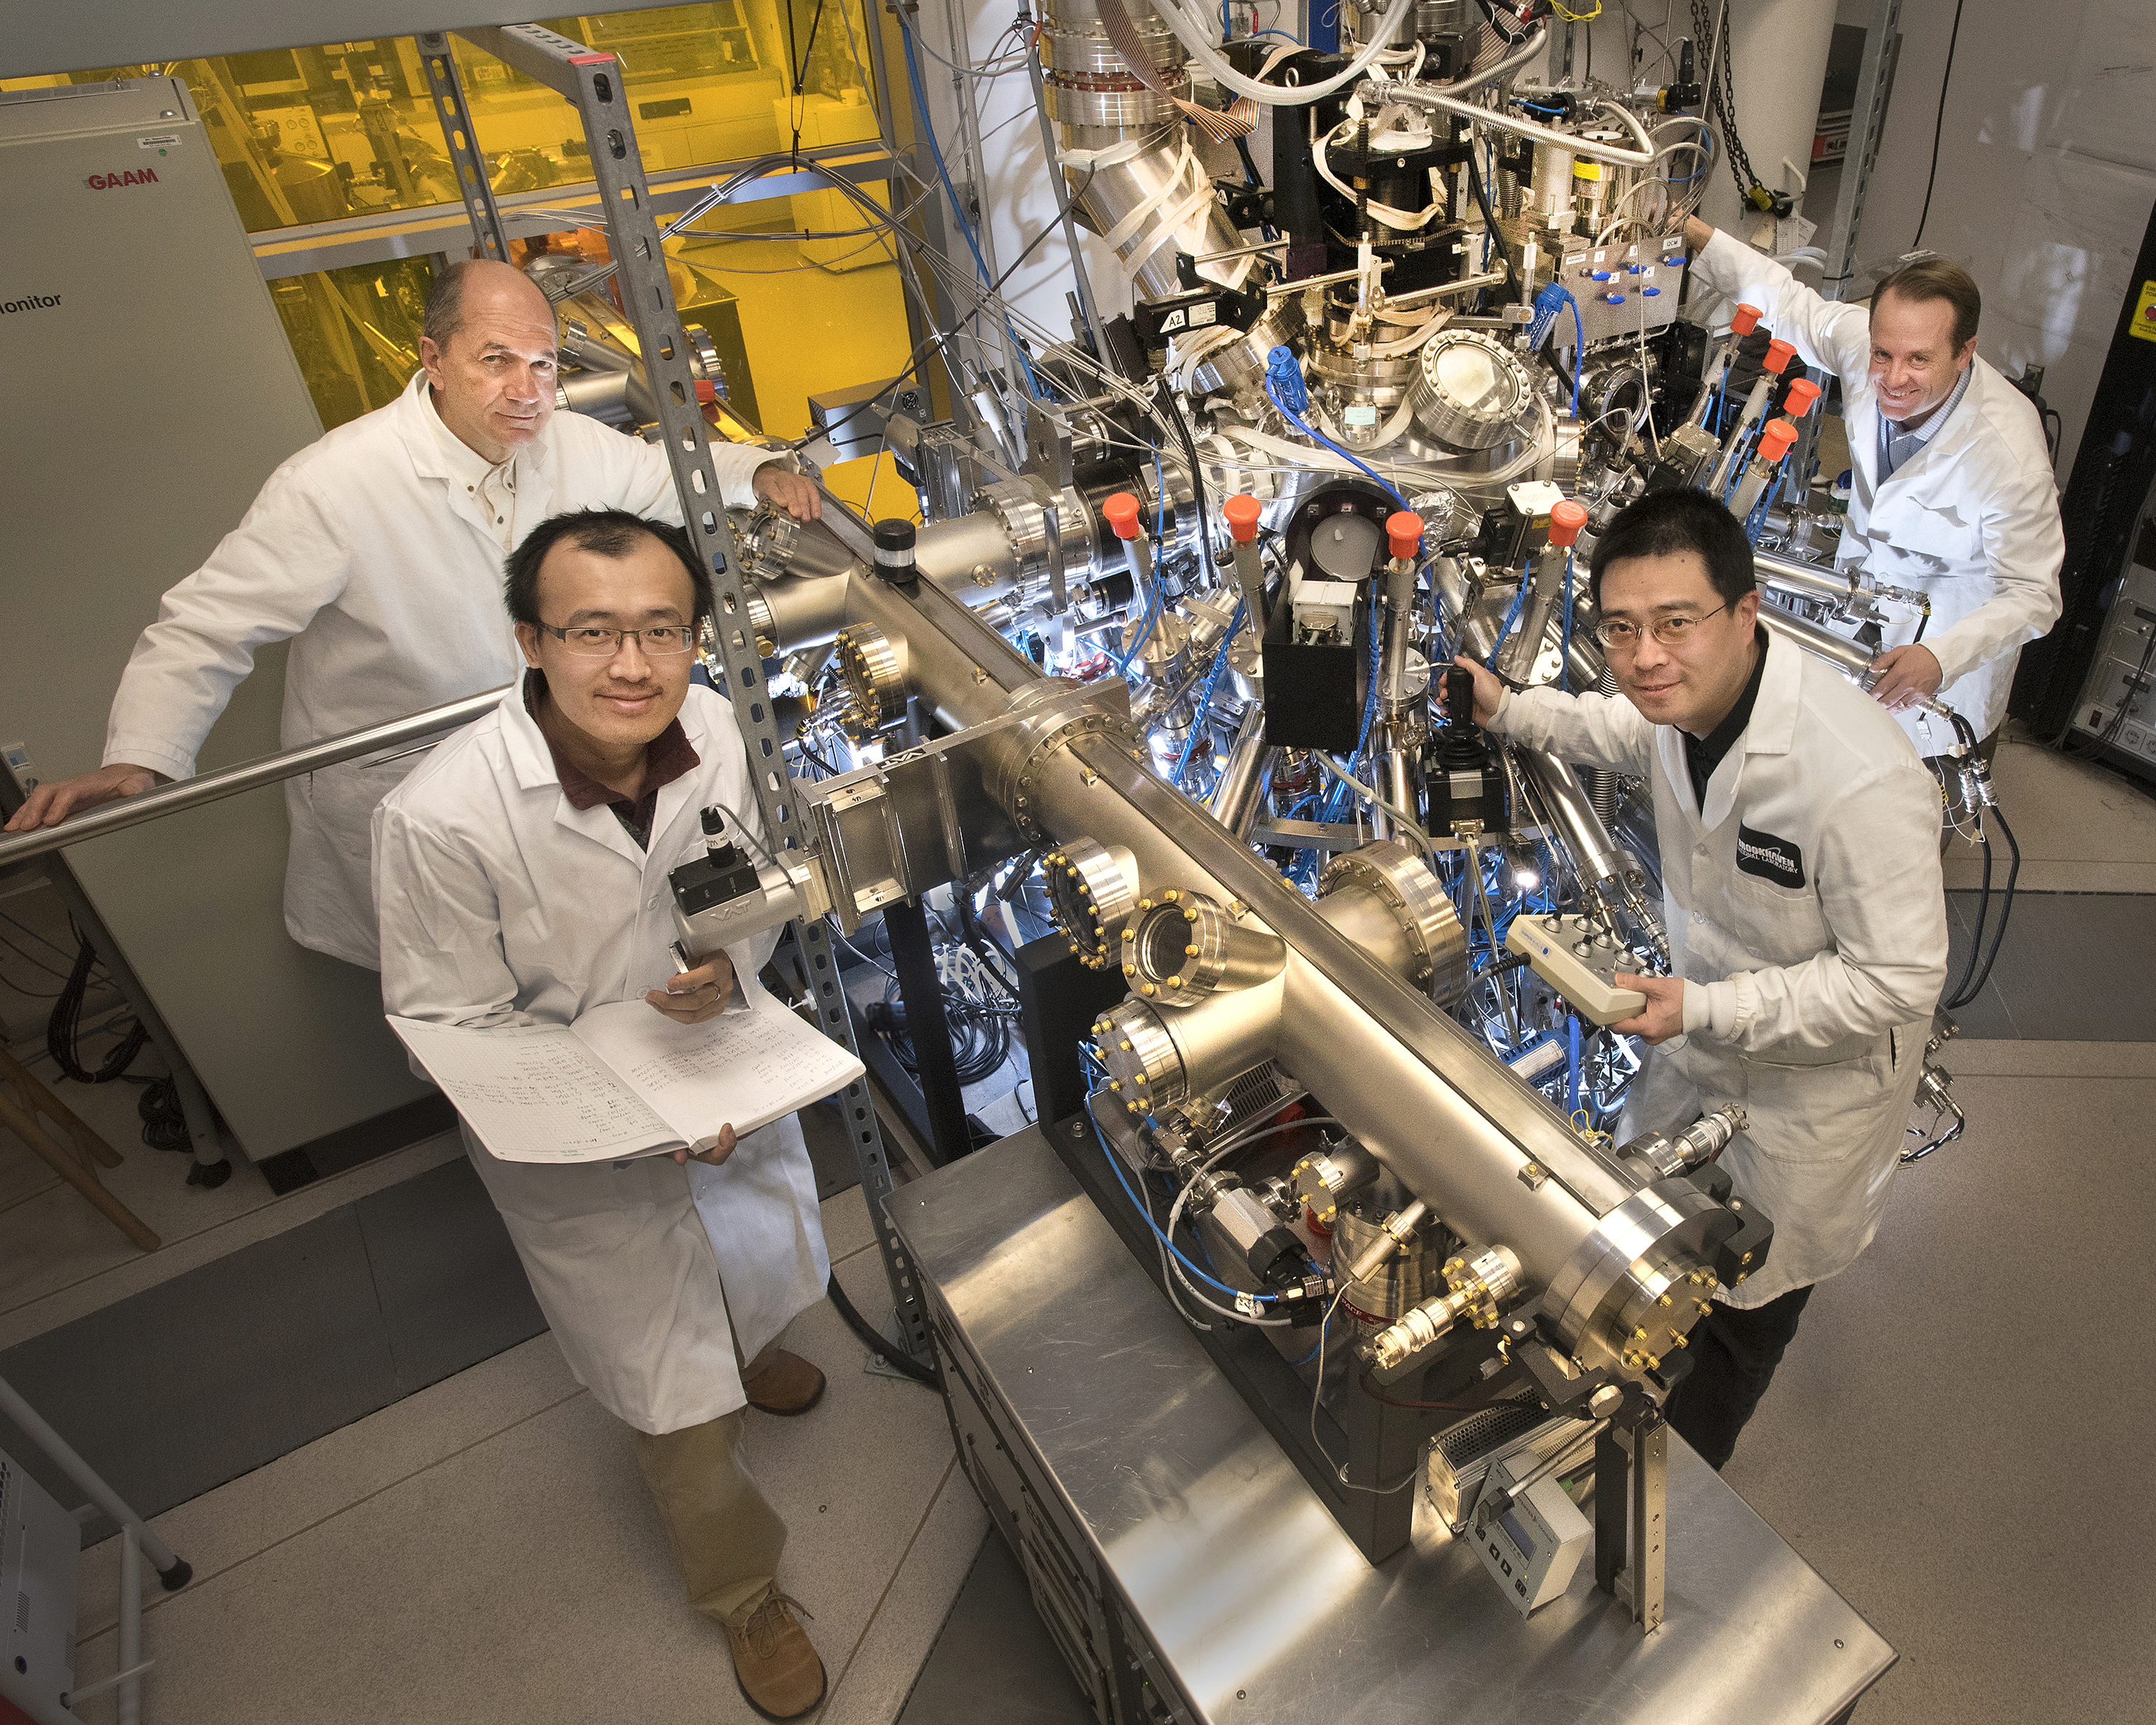 Photo Credit: Xi He and team with research equipment